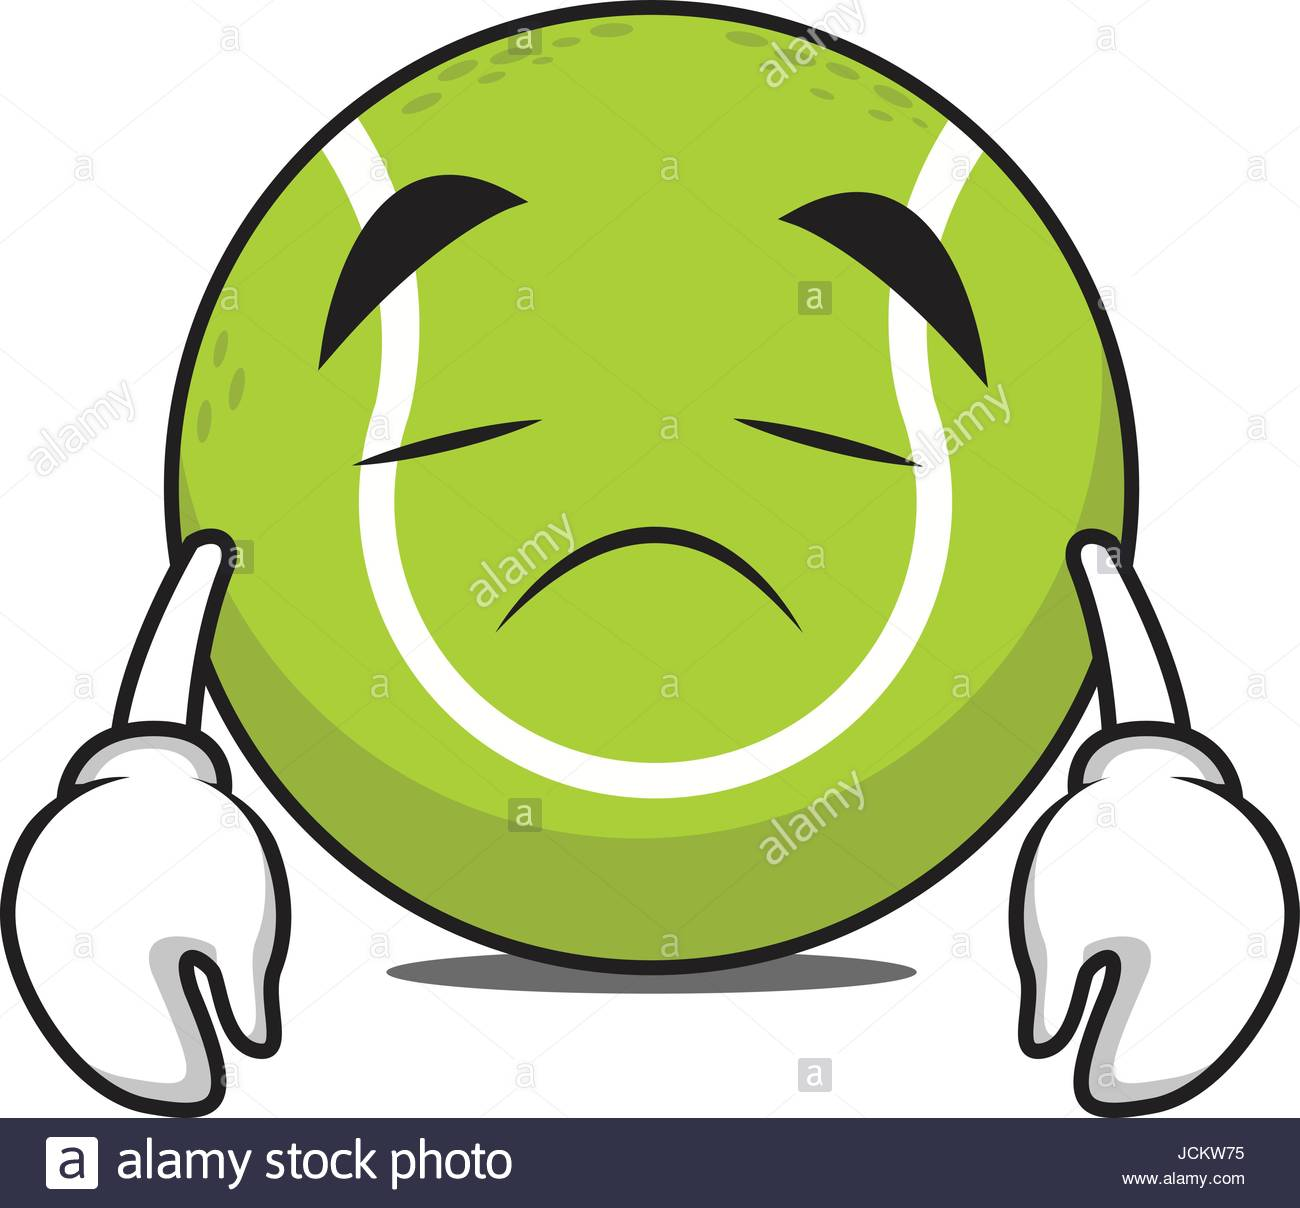 1300x1208 Sad Tennis Ball Character Cartoon Vector Illustration Stock Vector